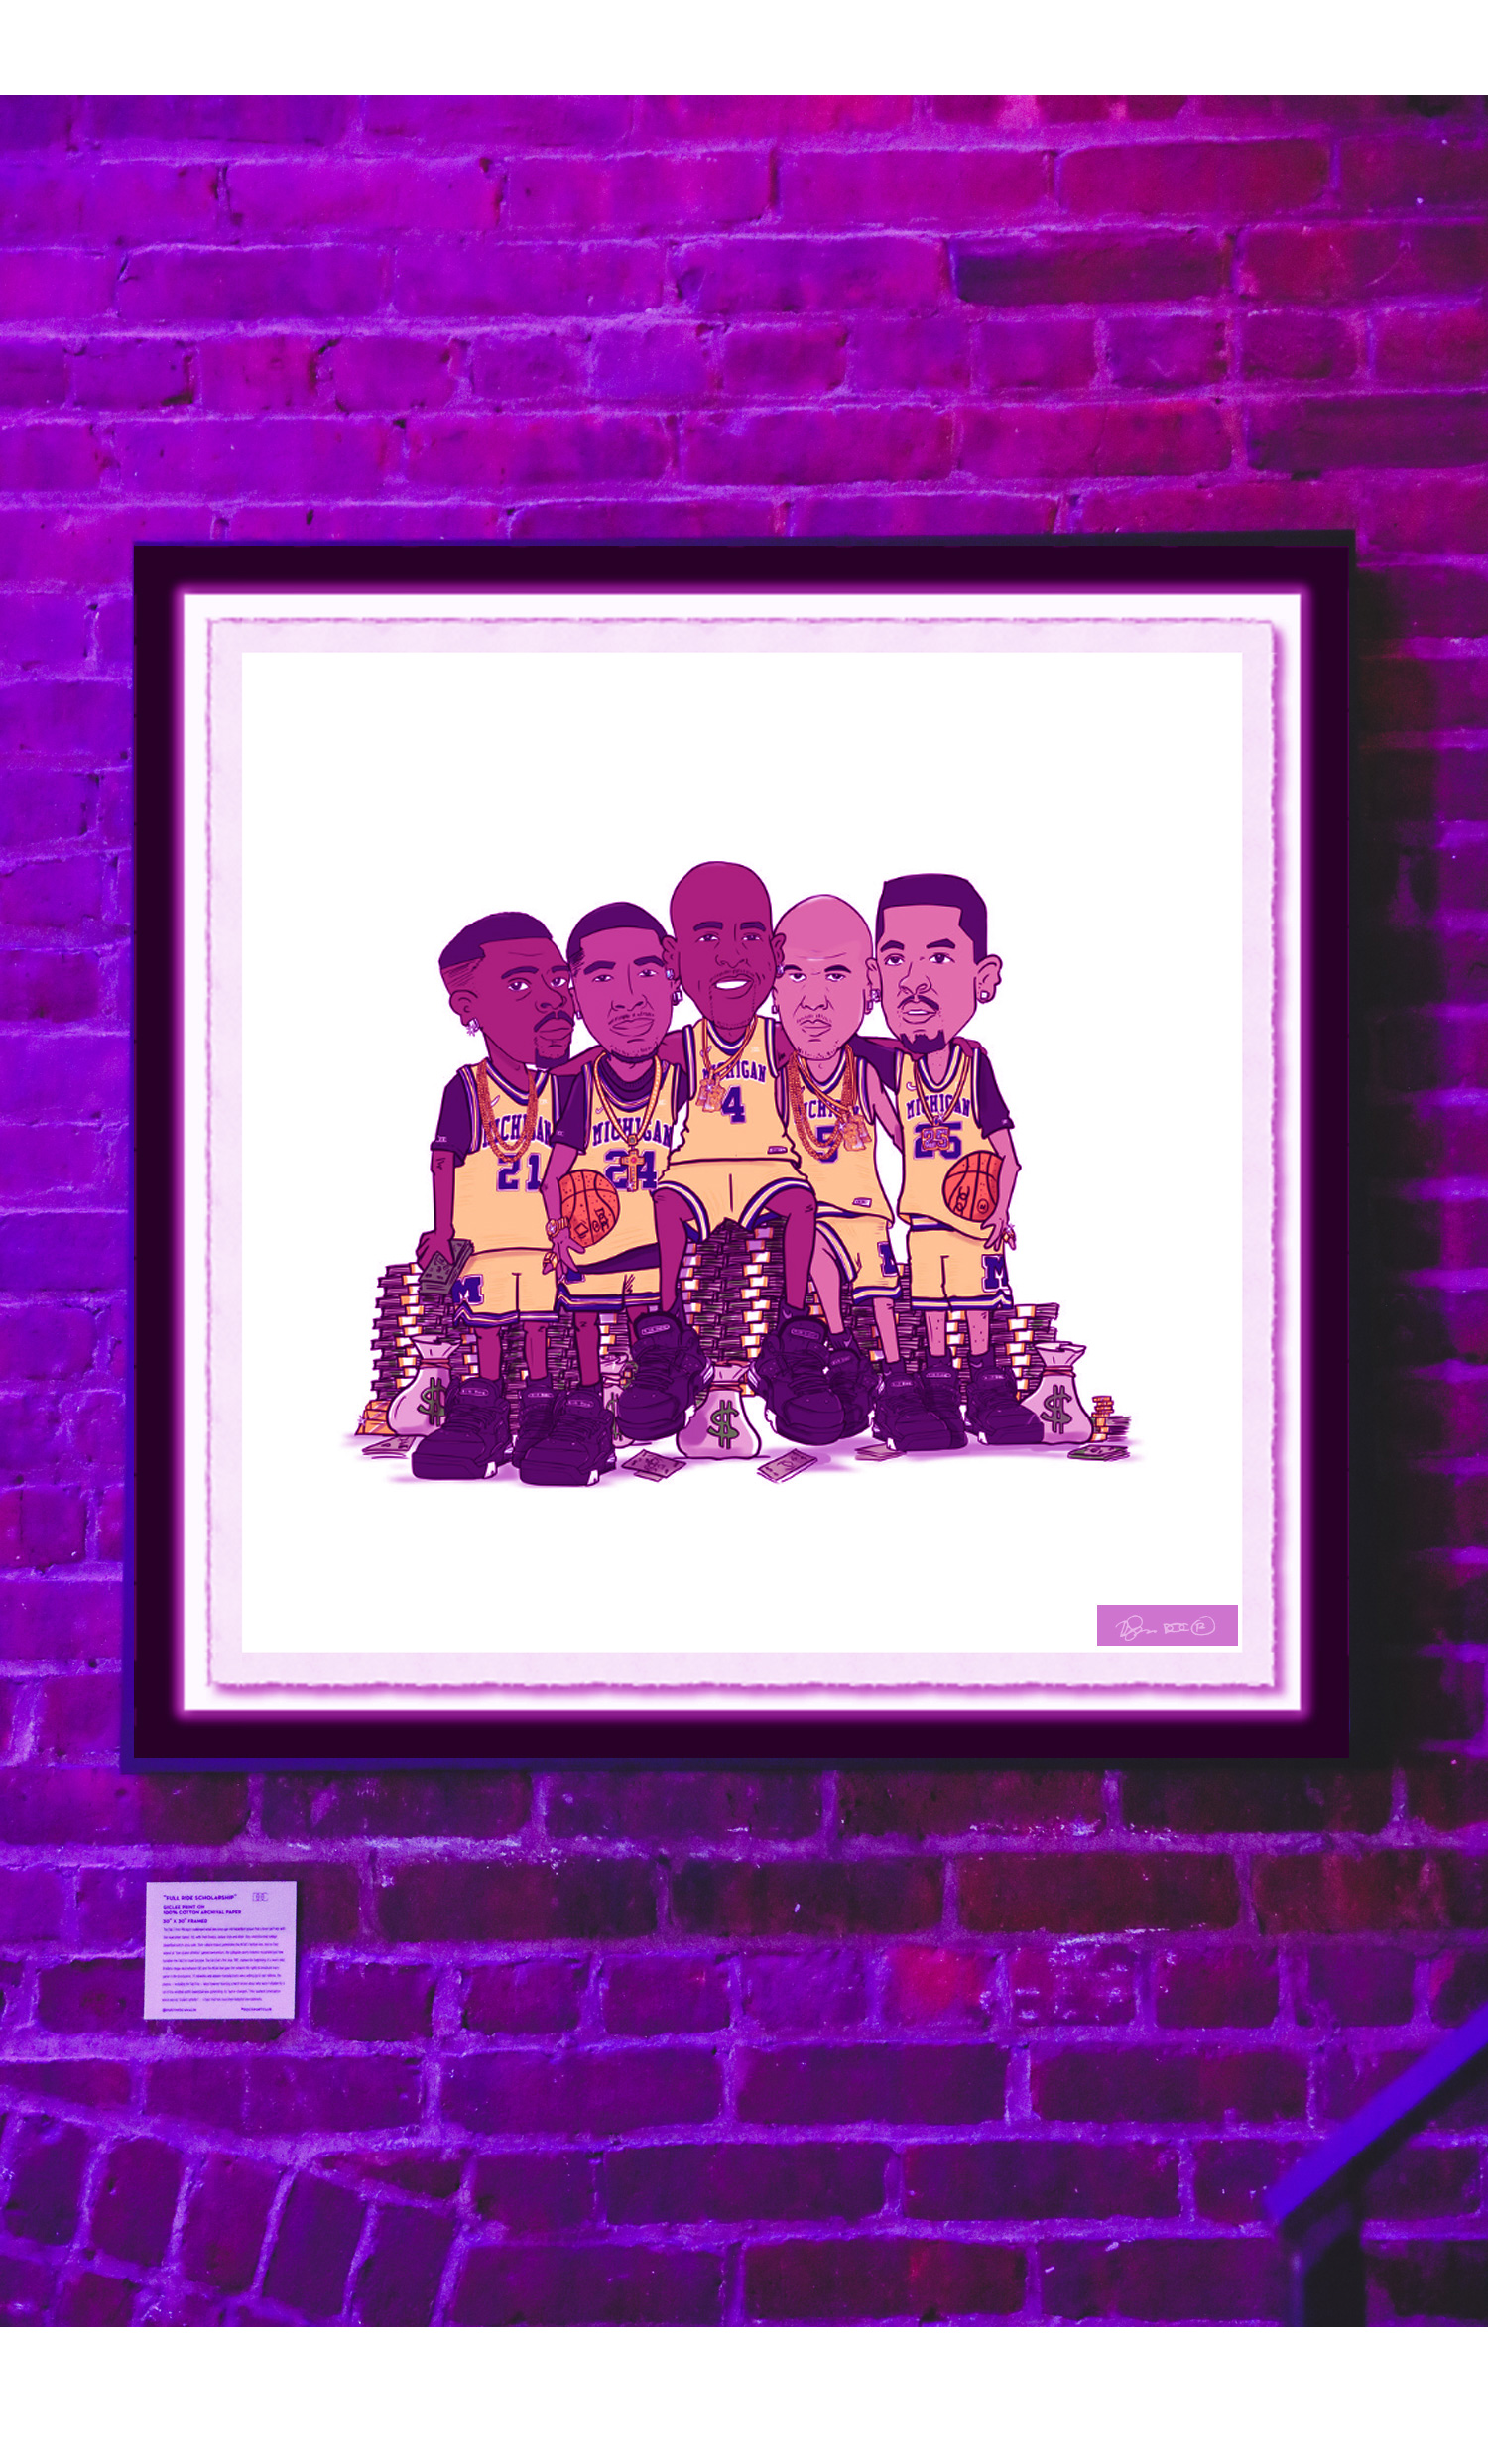 """""""FULL RIDE SCHOLARSHIP"""" - ///// Giclee print on 100% cotton archival paper- 30"""" x 30"""" framedThe Fab 5 from Michigan challenged what was once age-old basketball gospel that a team can't win with 5 newcomer starters. Yet, with their finesse, unique style and drive-they revolutionized college basketball and its dress code. Their cultural impact penetrated the NCAA's bottom line. And as their appeal as"""